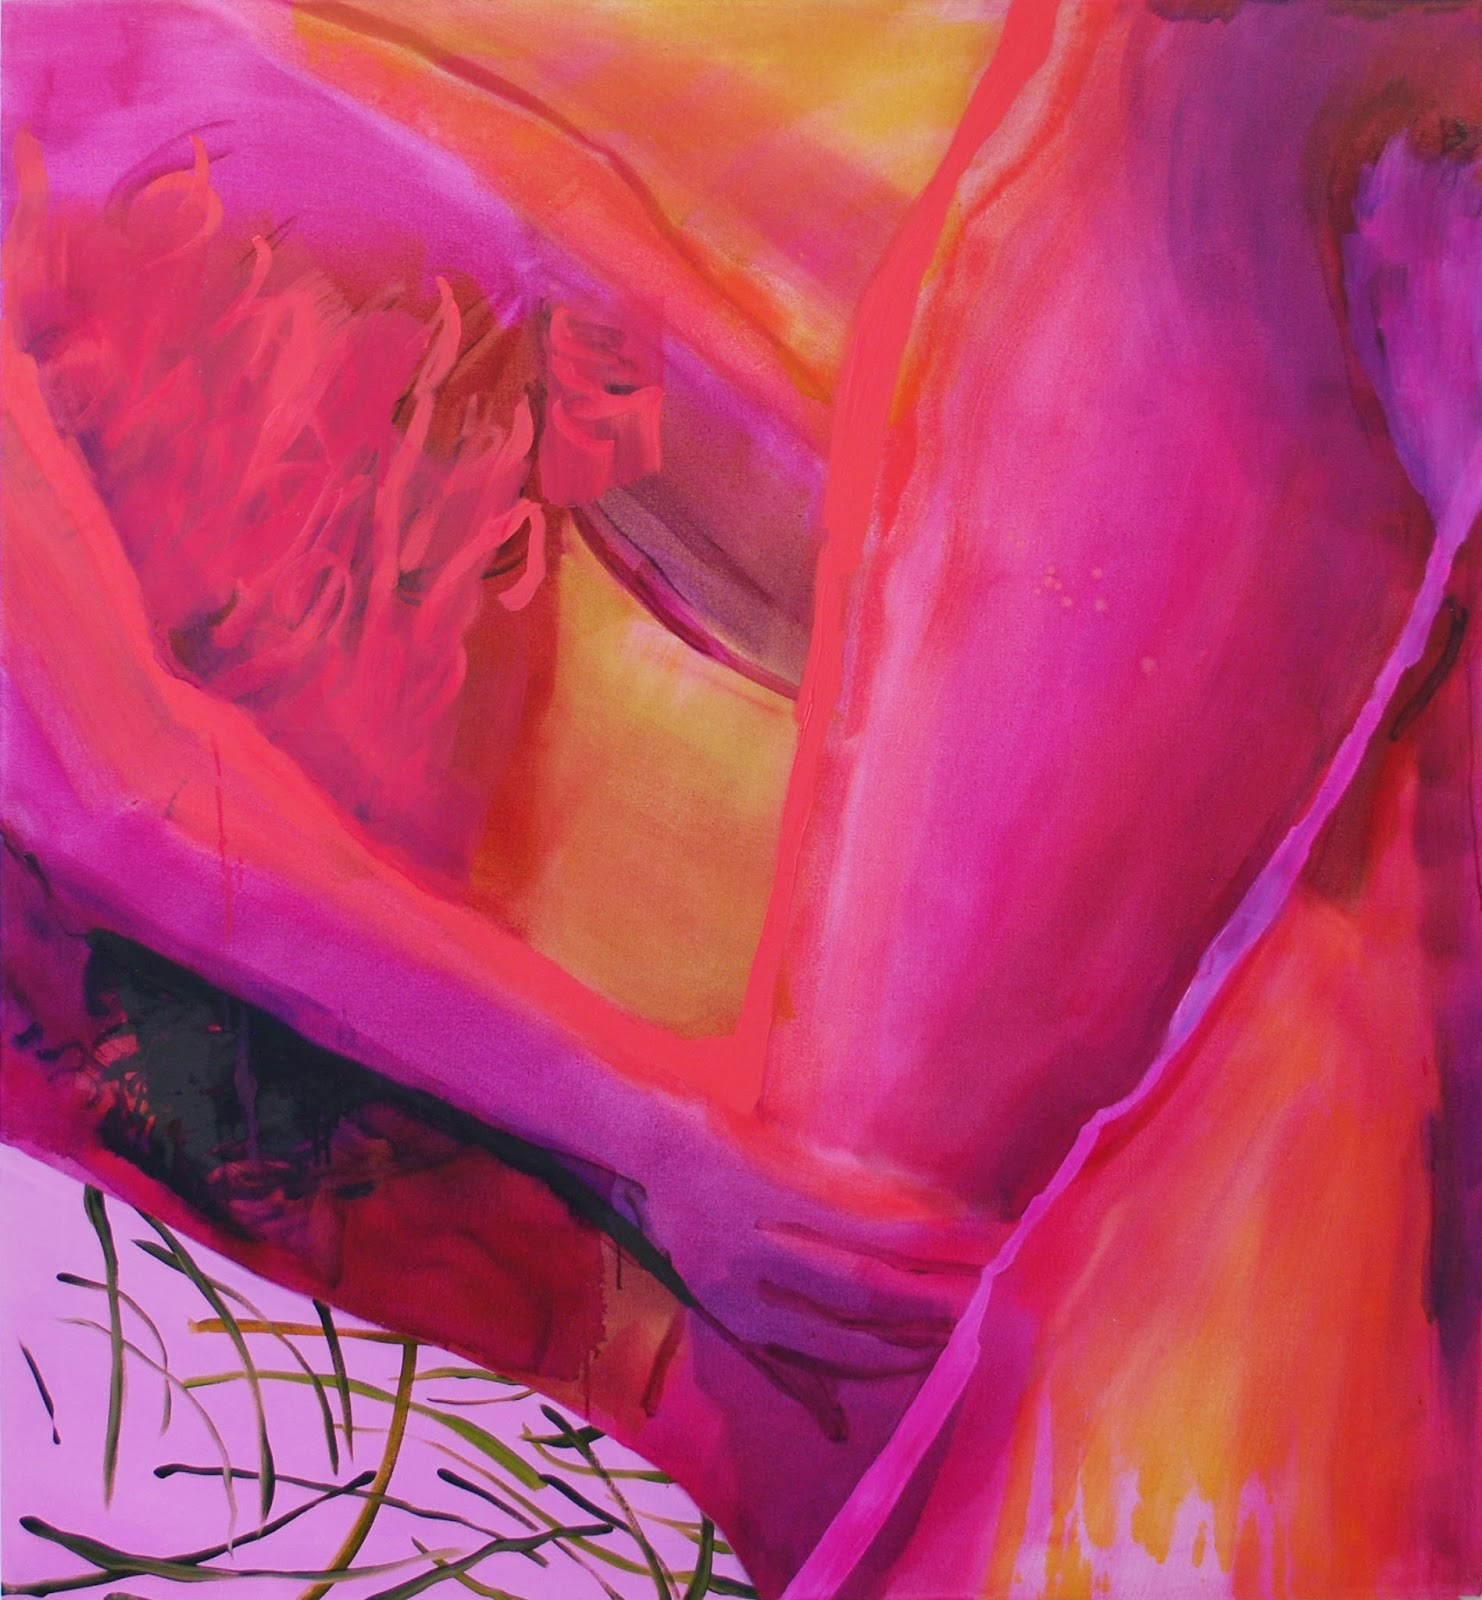 Sarah Faux, Touch, 2014, oil on canvas, 56 x 50 inches (courtesy of the artist)